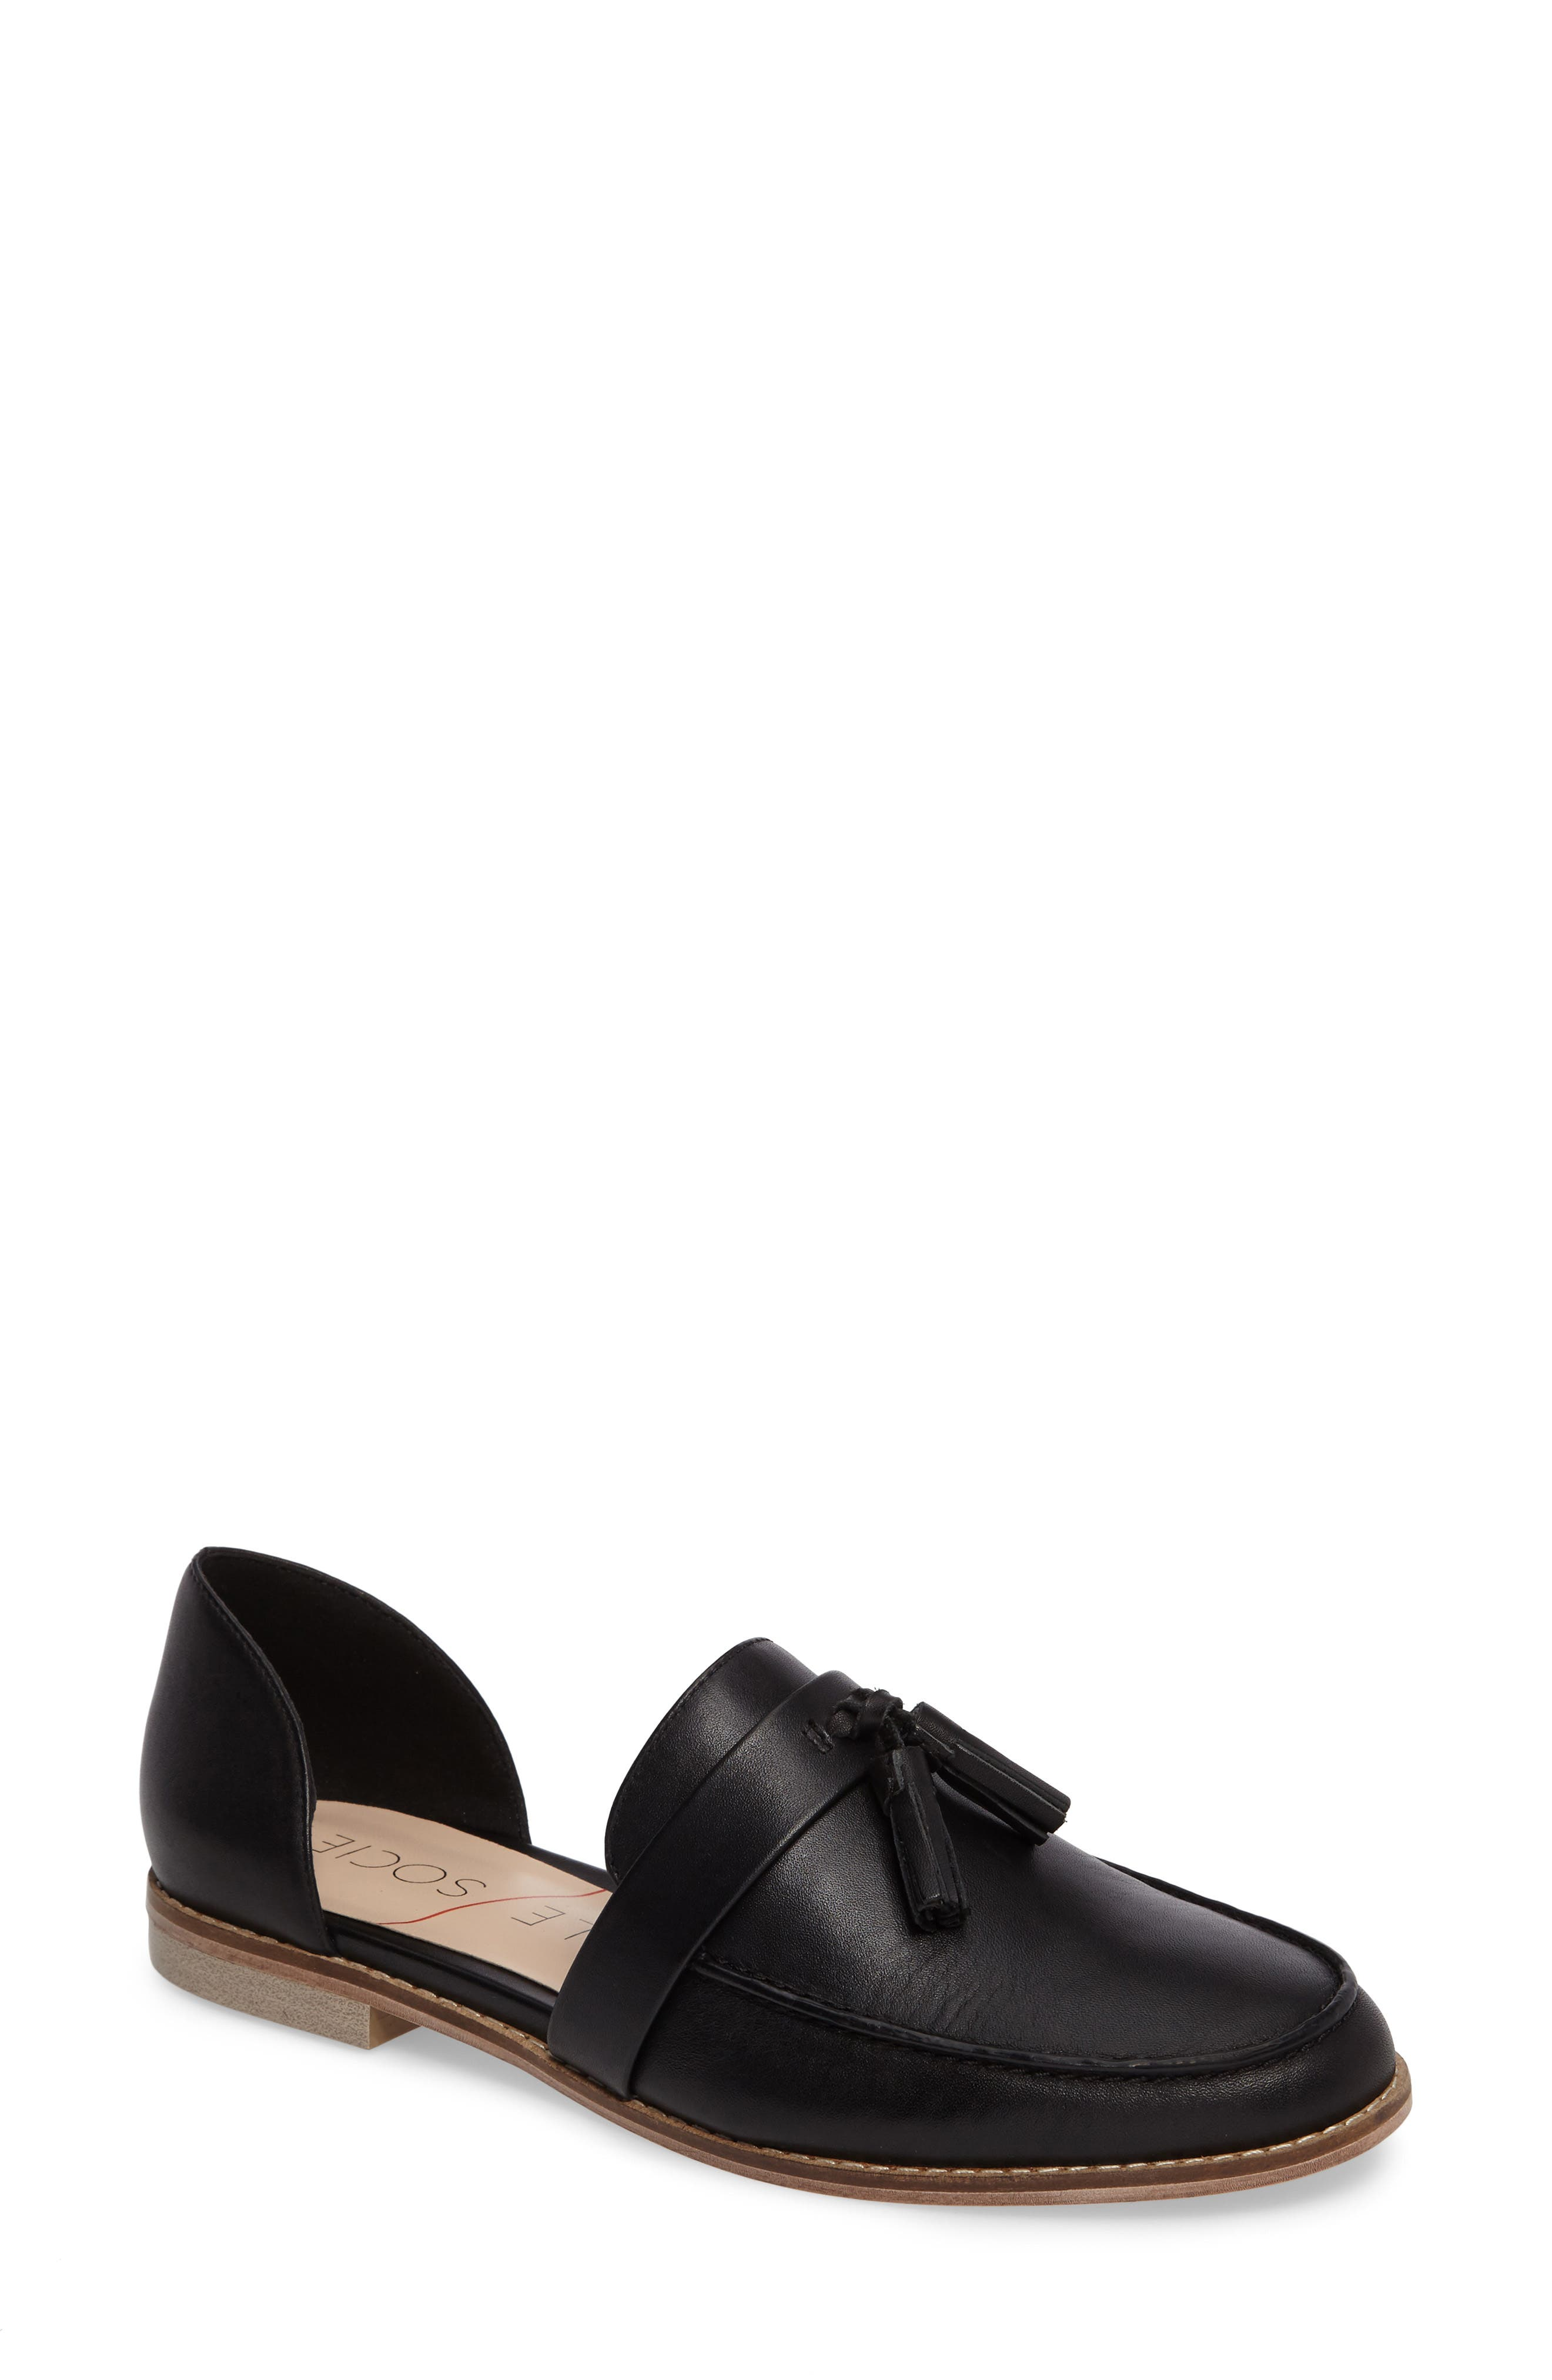 Blair d'Orsay Loafer,                         Main,                         color, 001